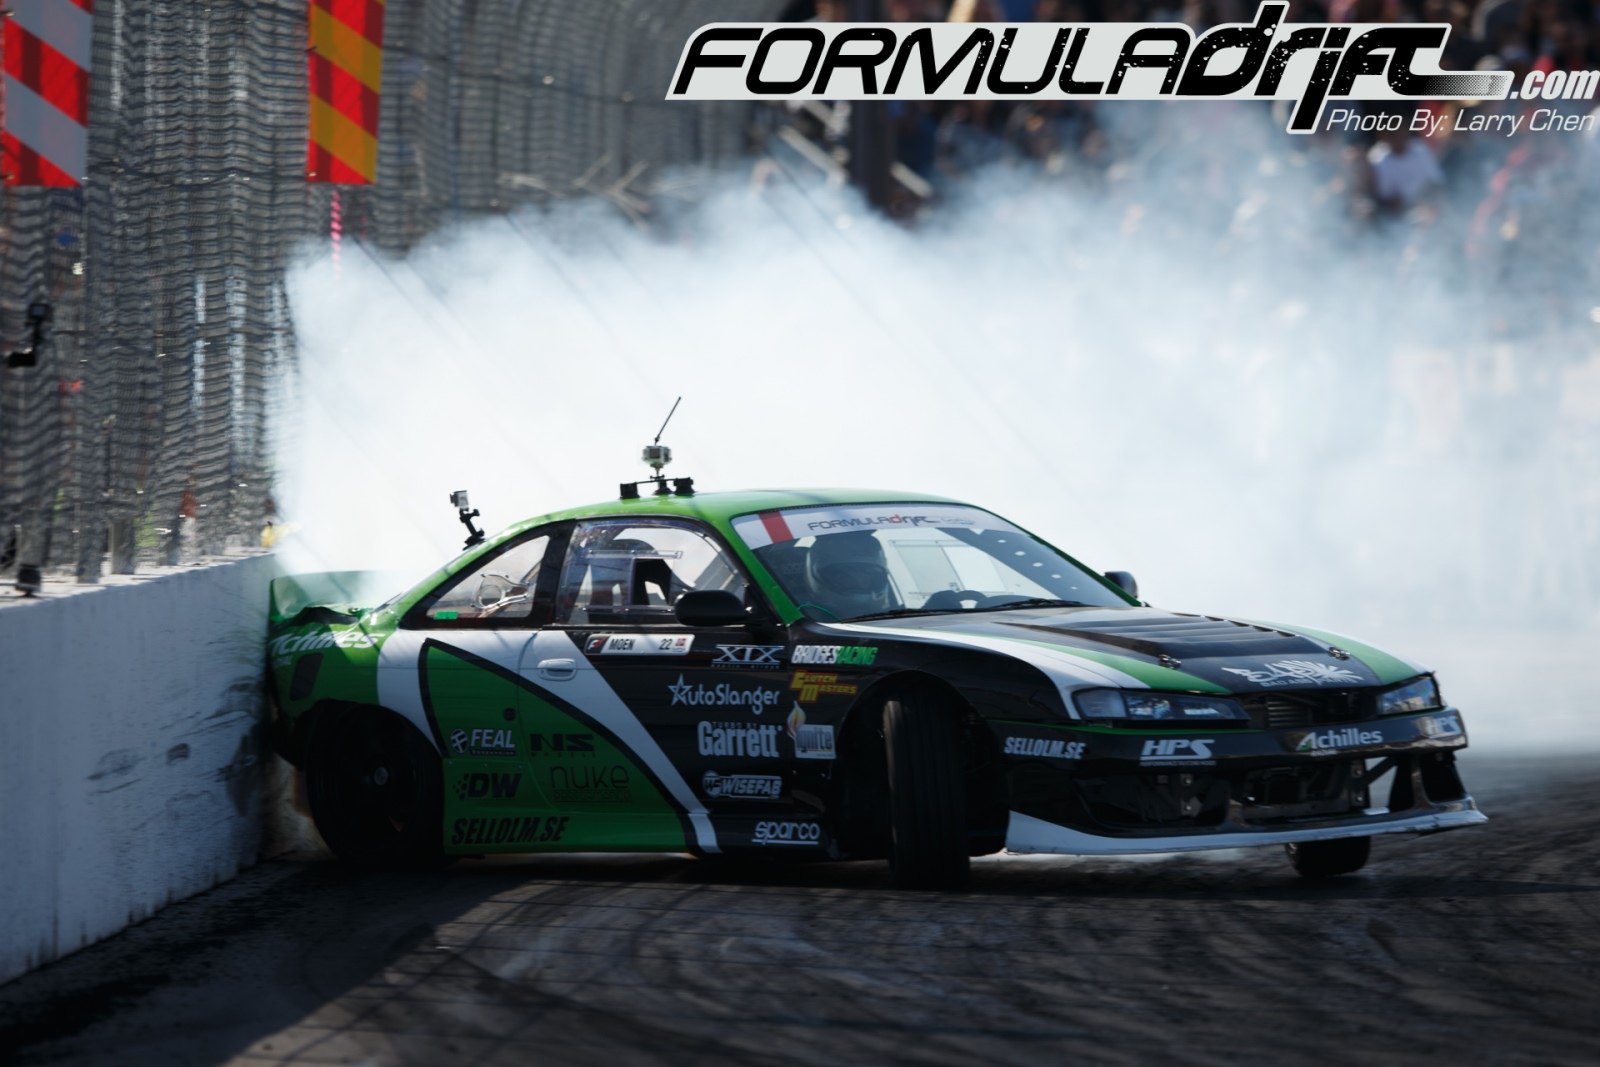 Formula DRIFT Continues Partnership with GoPro for 2015